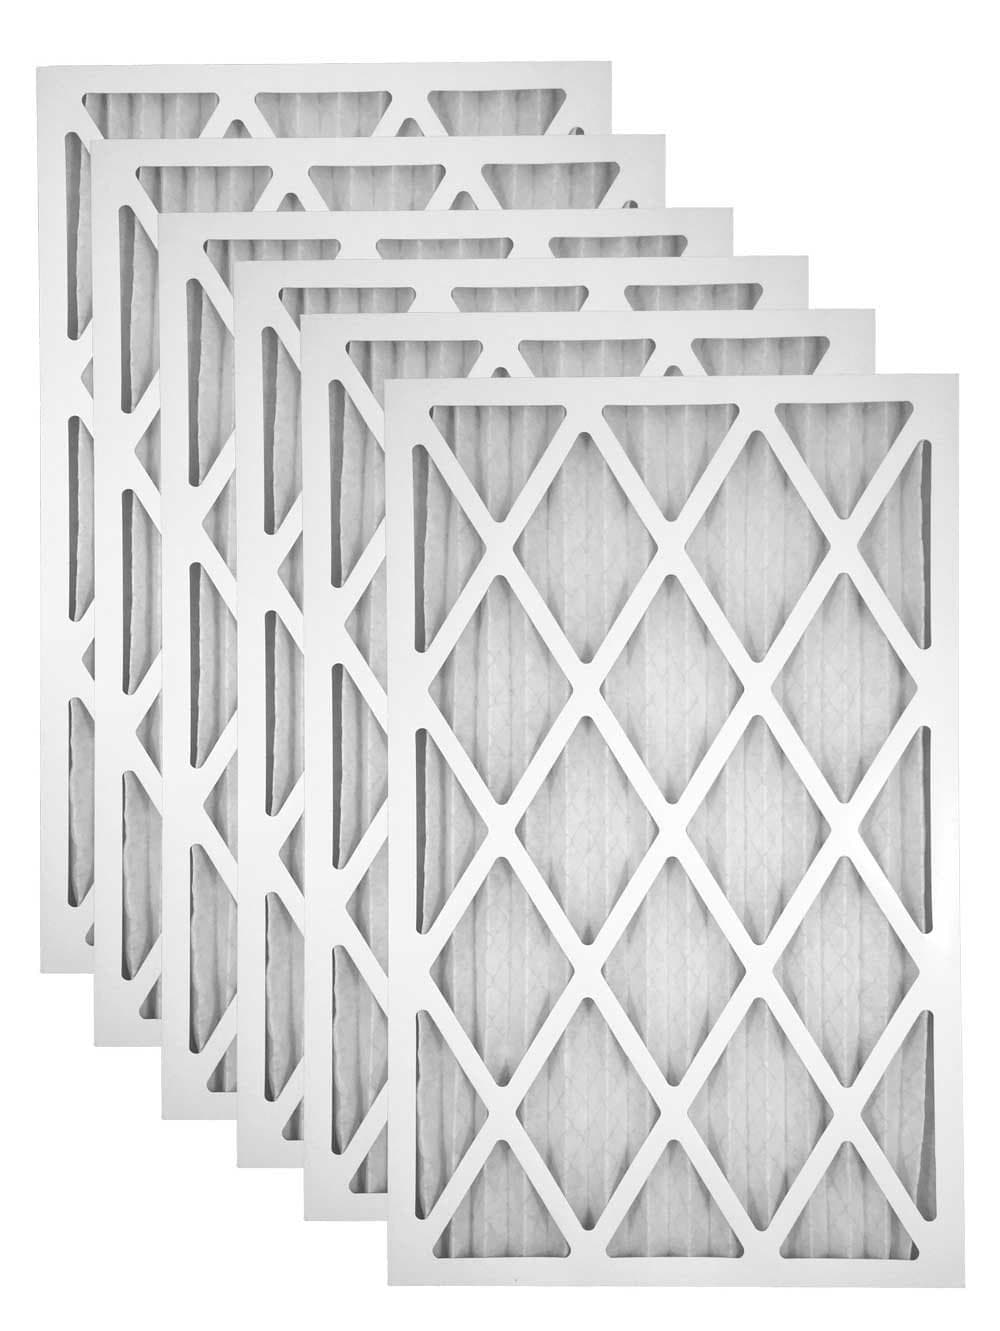 18x24x2 Merv 8 AC Furnace Filter - Case of 6